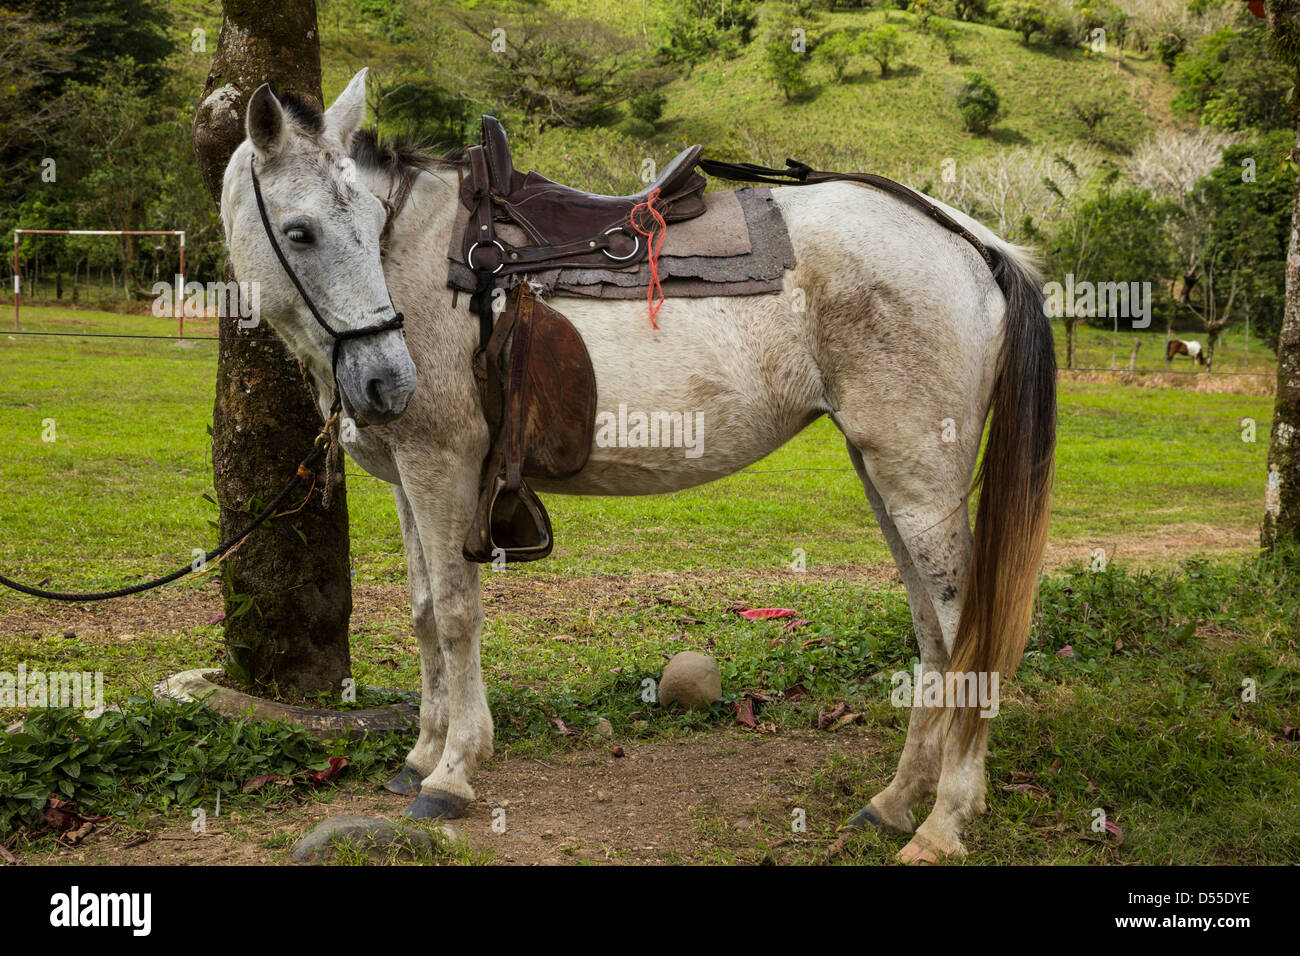 Saddled horse tied to a tree in the Lake Arenal area, Alajuela province, Costa Rica. - Stock Image